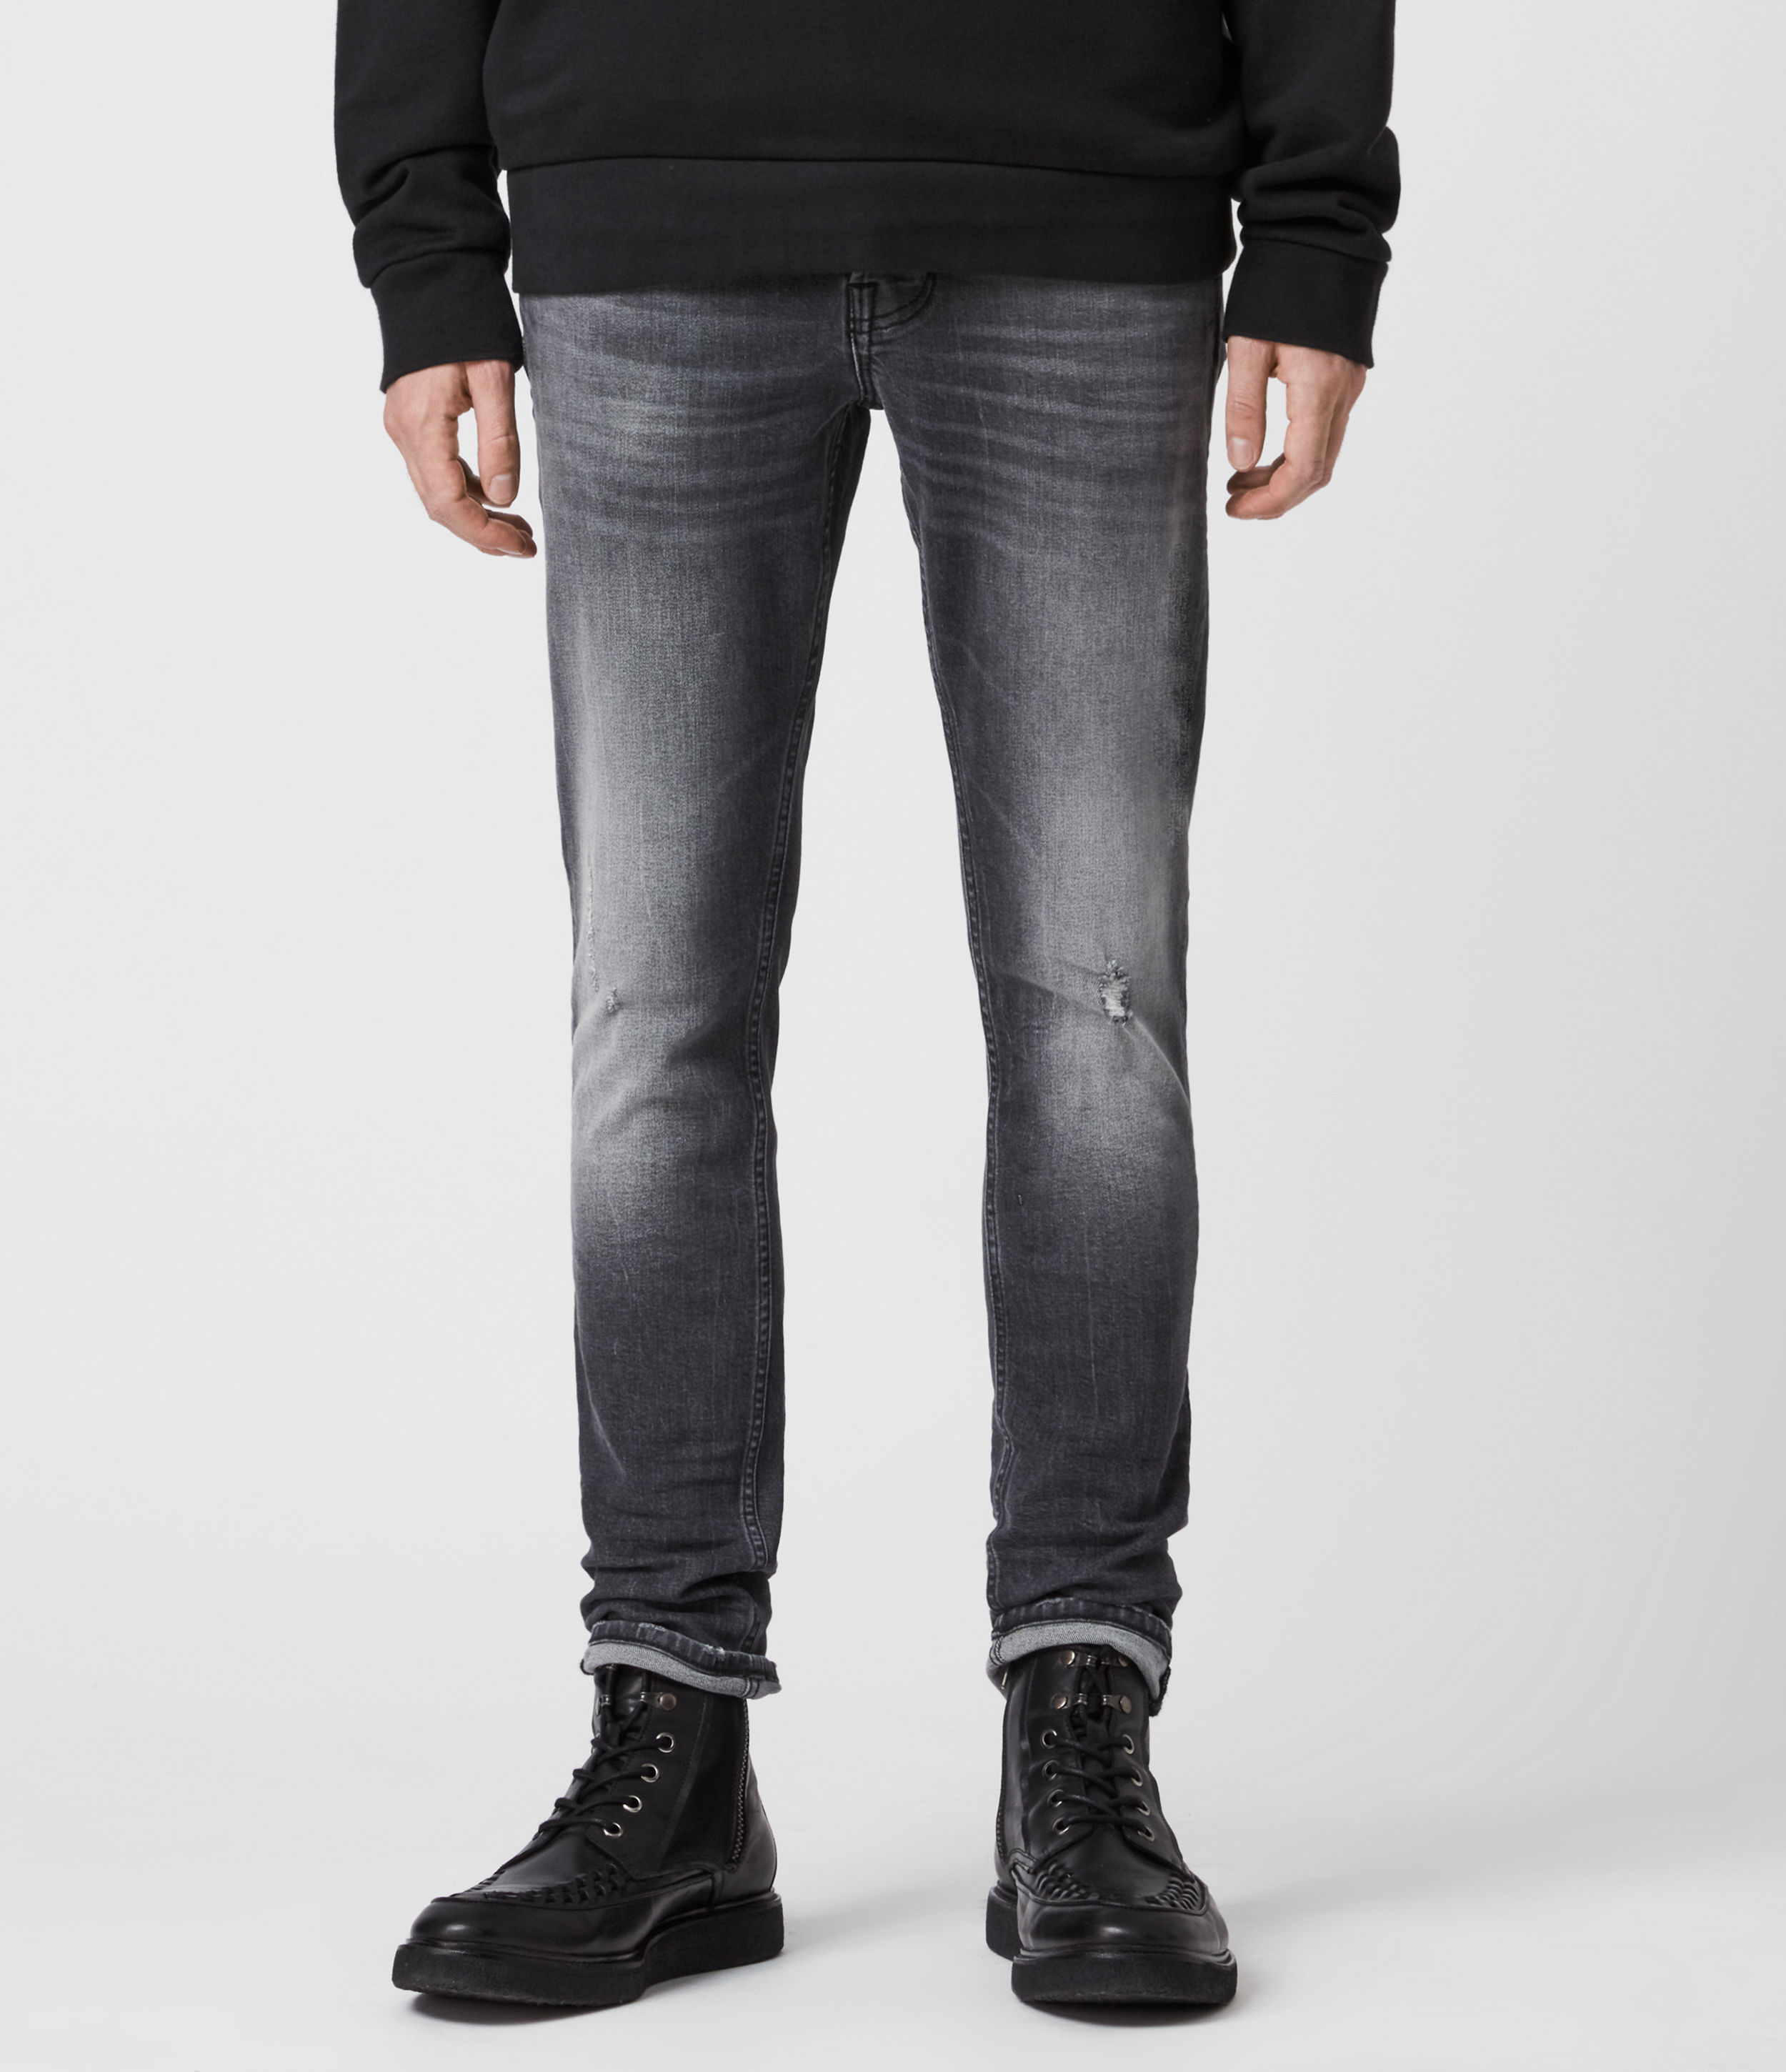 AllSaints Cigarette Damaged Skinny Jeans, Faded Black